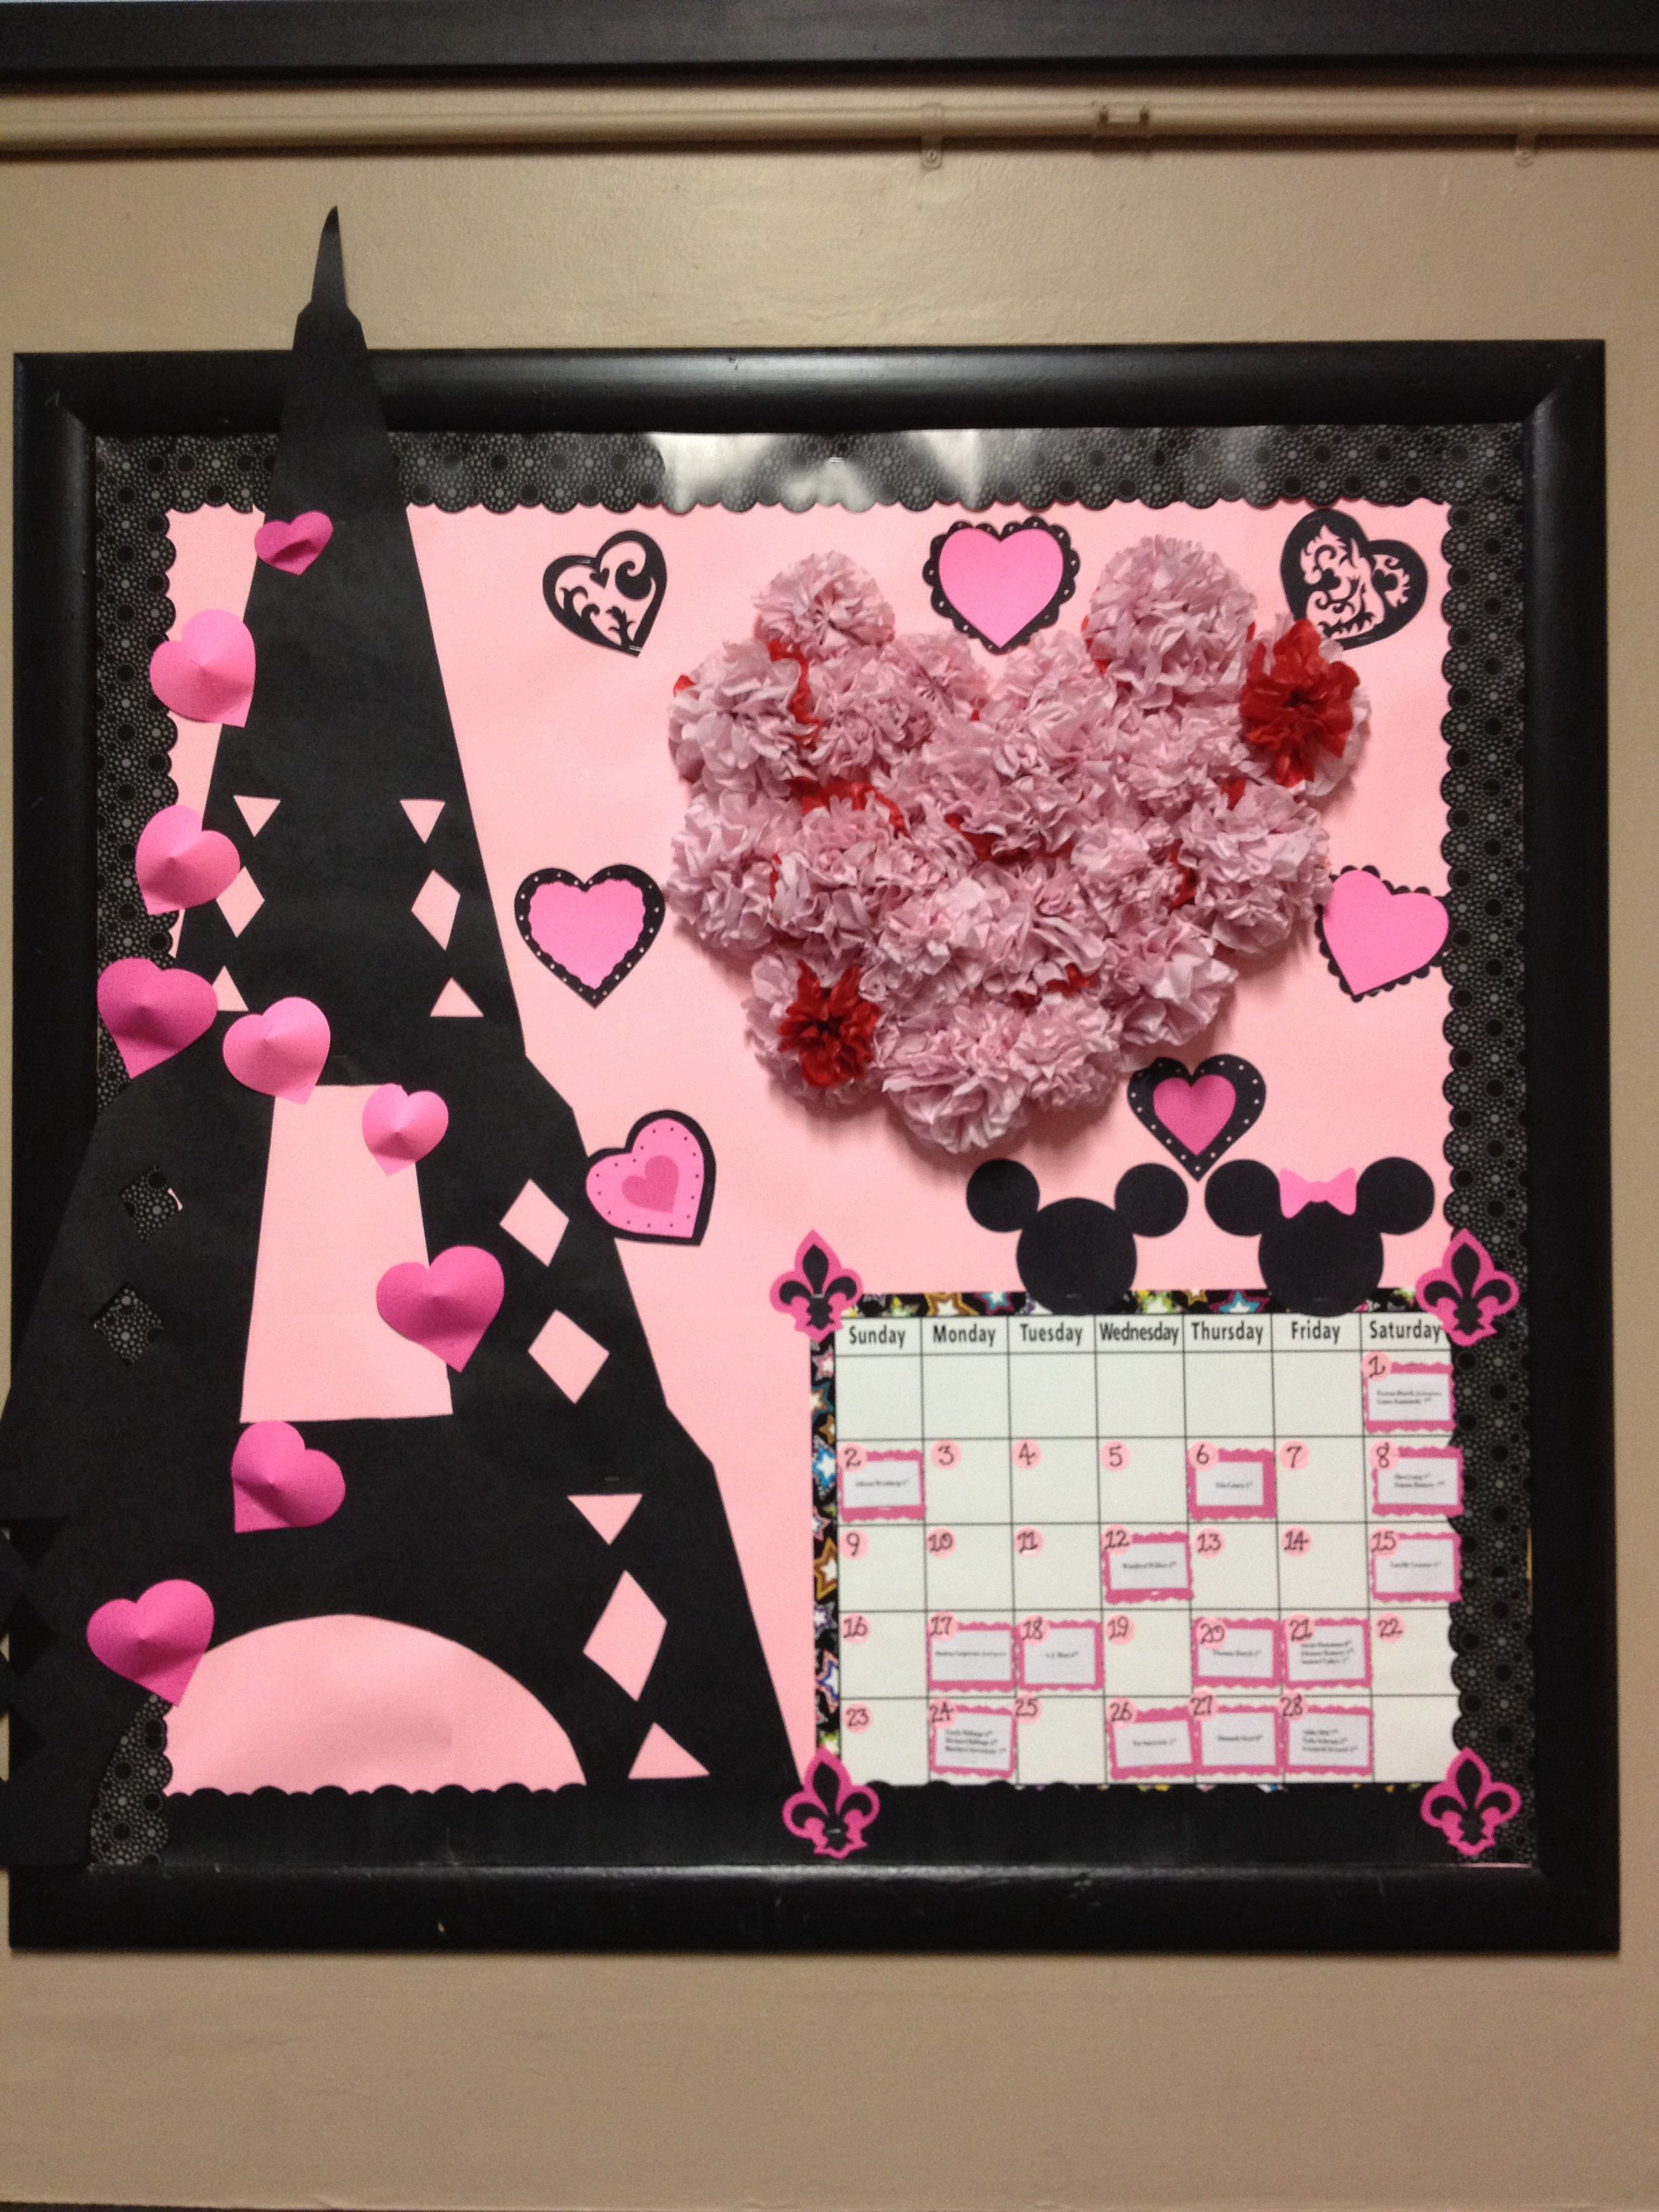 February 2014 Bulletin Board Pink And Black Paris In Love Theme